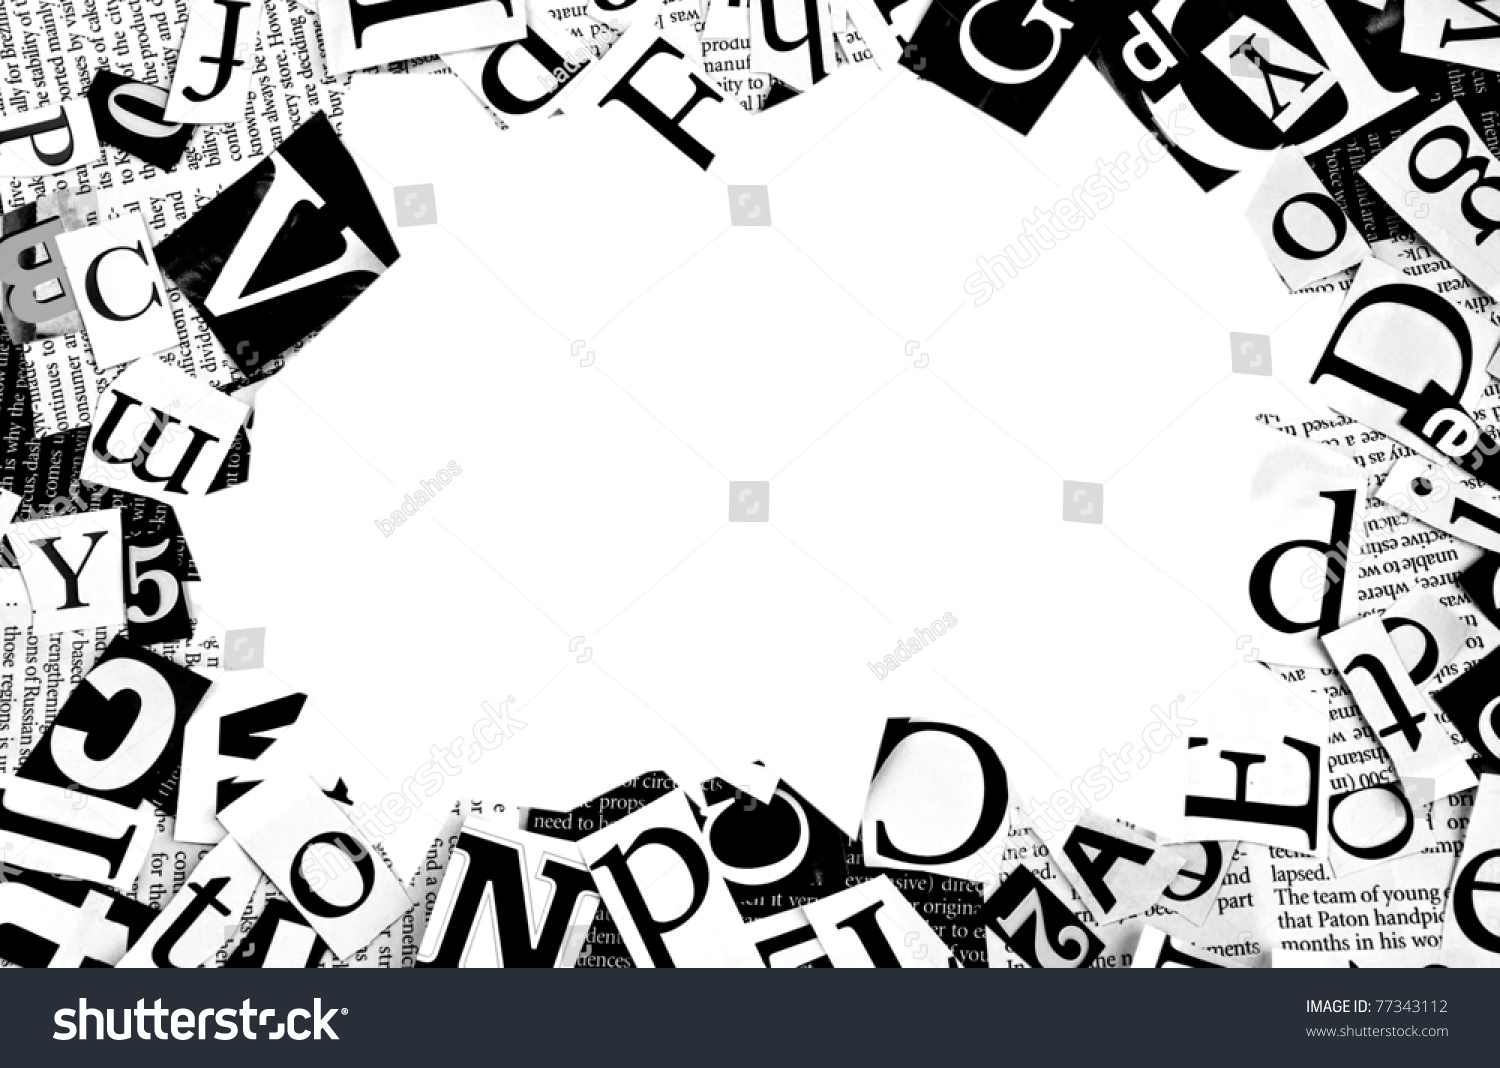 letters cut newspaper background stock photo (edit now) 77343112